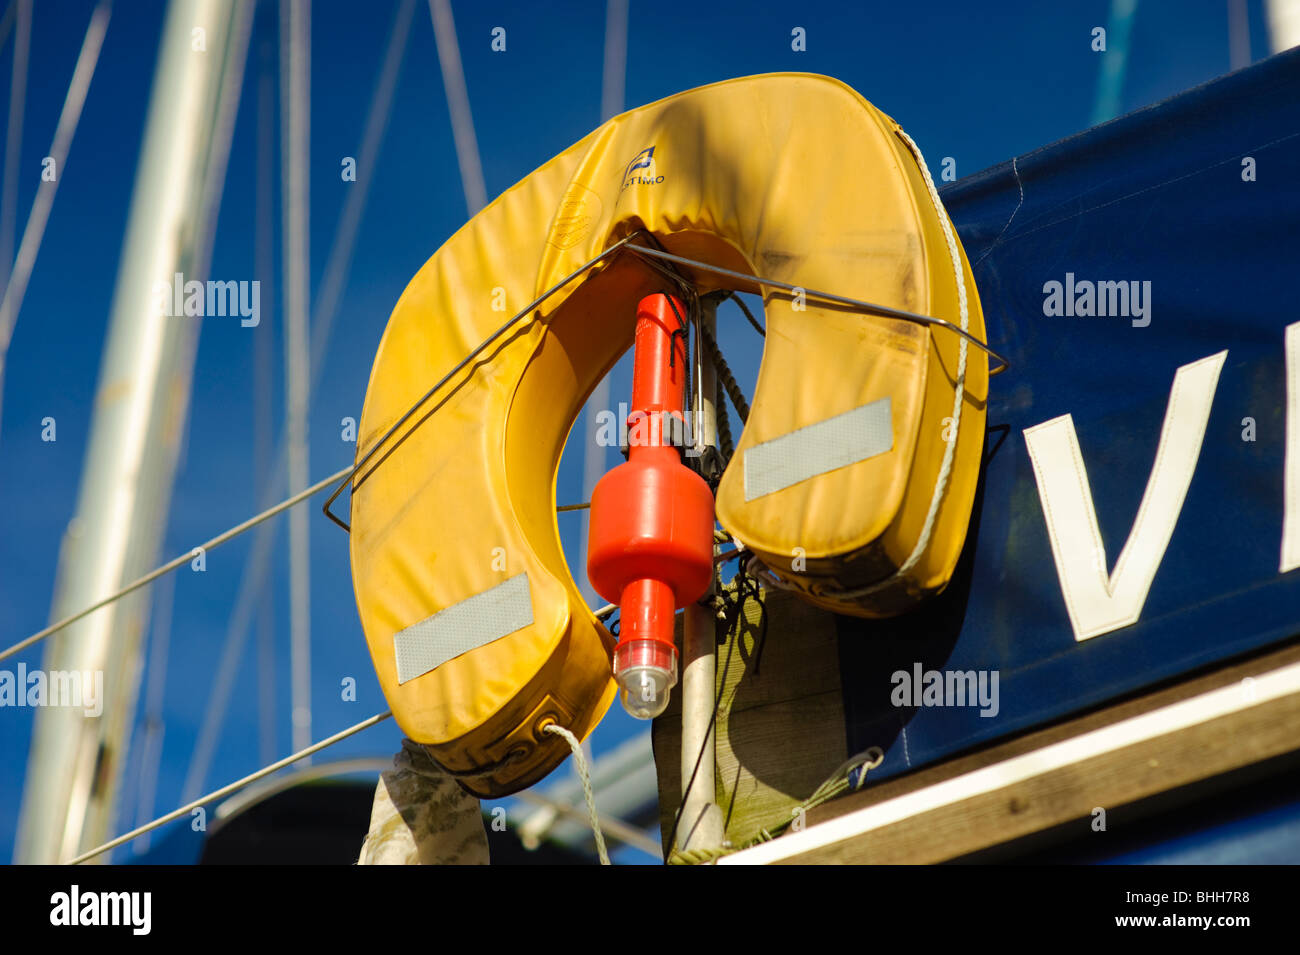 Man overboard sling with beacon, safety equipment on a yacht, UK - Stock Image